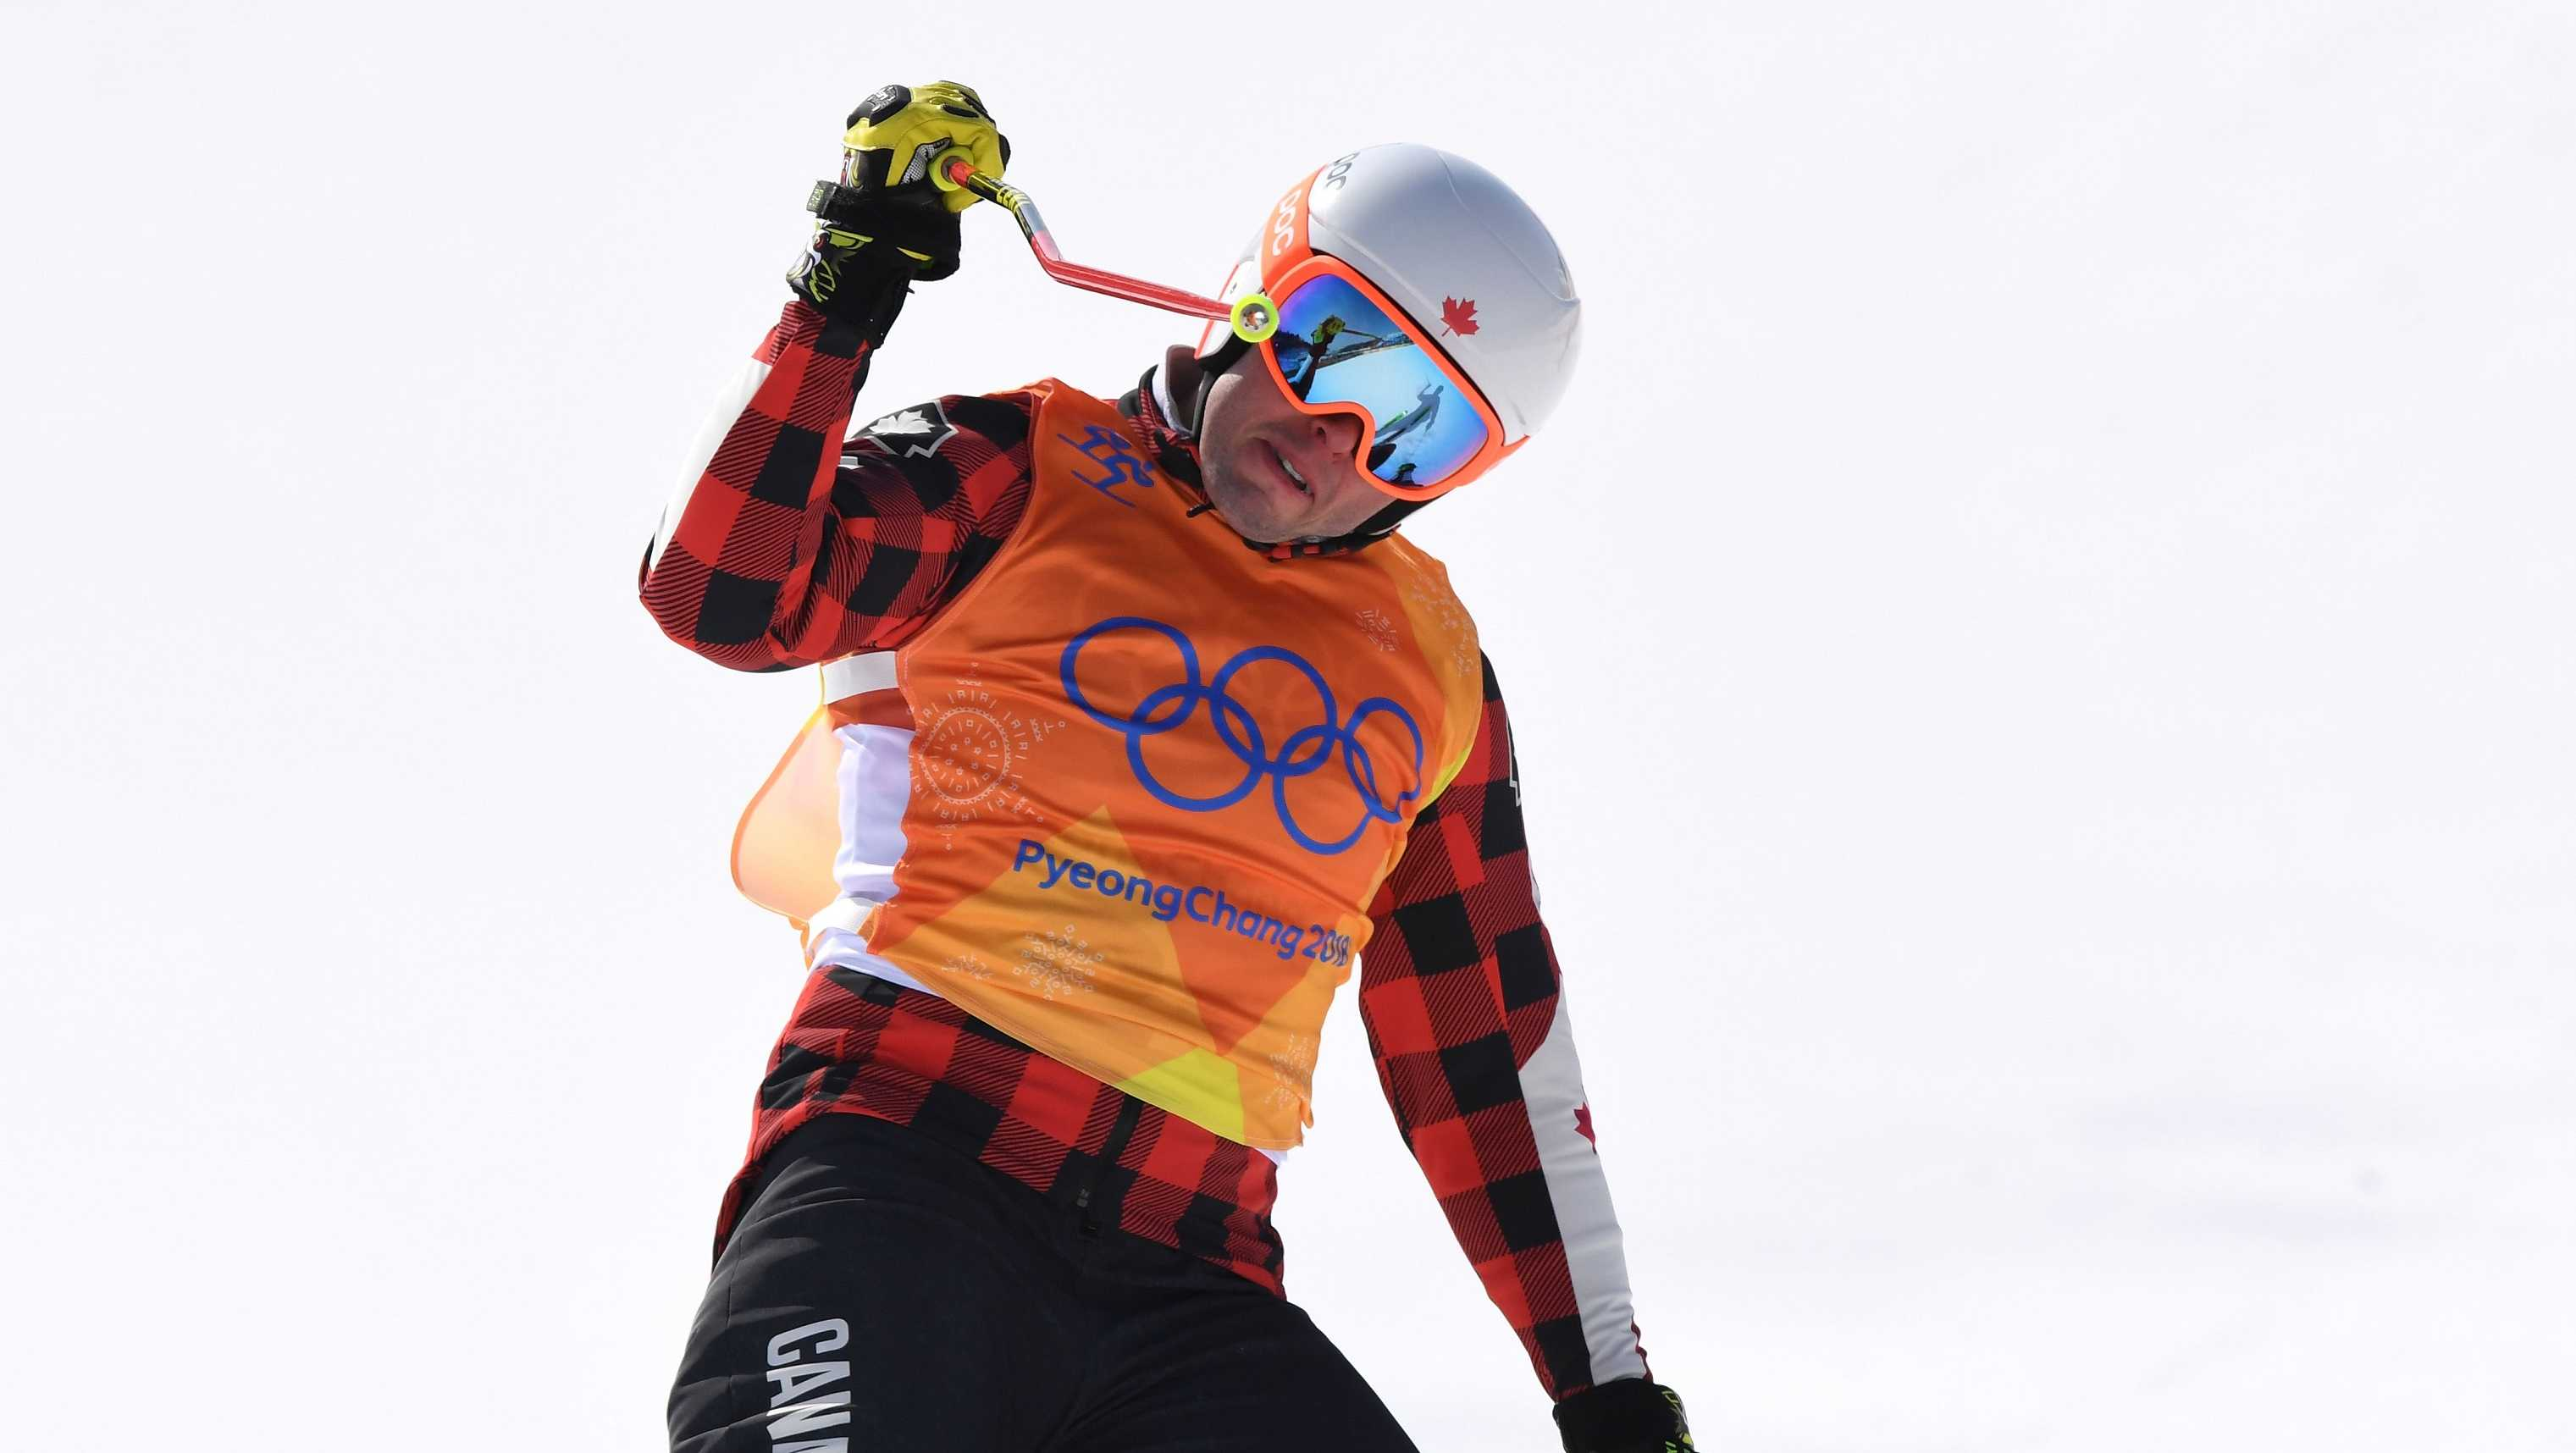 Dave Duncan of Canada, celebrates after winning heat 7 in the Freestyle Skiing Men's Ski Cross 1/8 finals on day 12 of the PyeongChang 2018 Winter Olympic Games at Phoenix Snow Park on February 21, 2018.